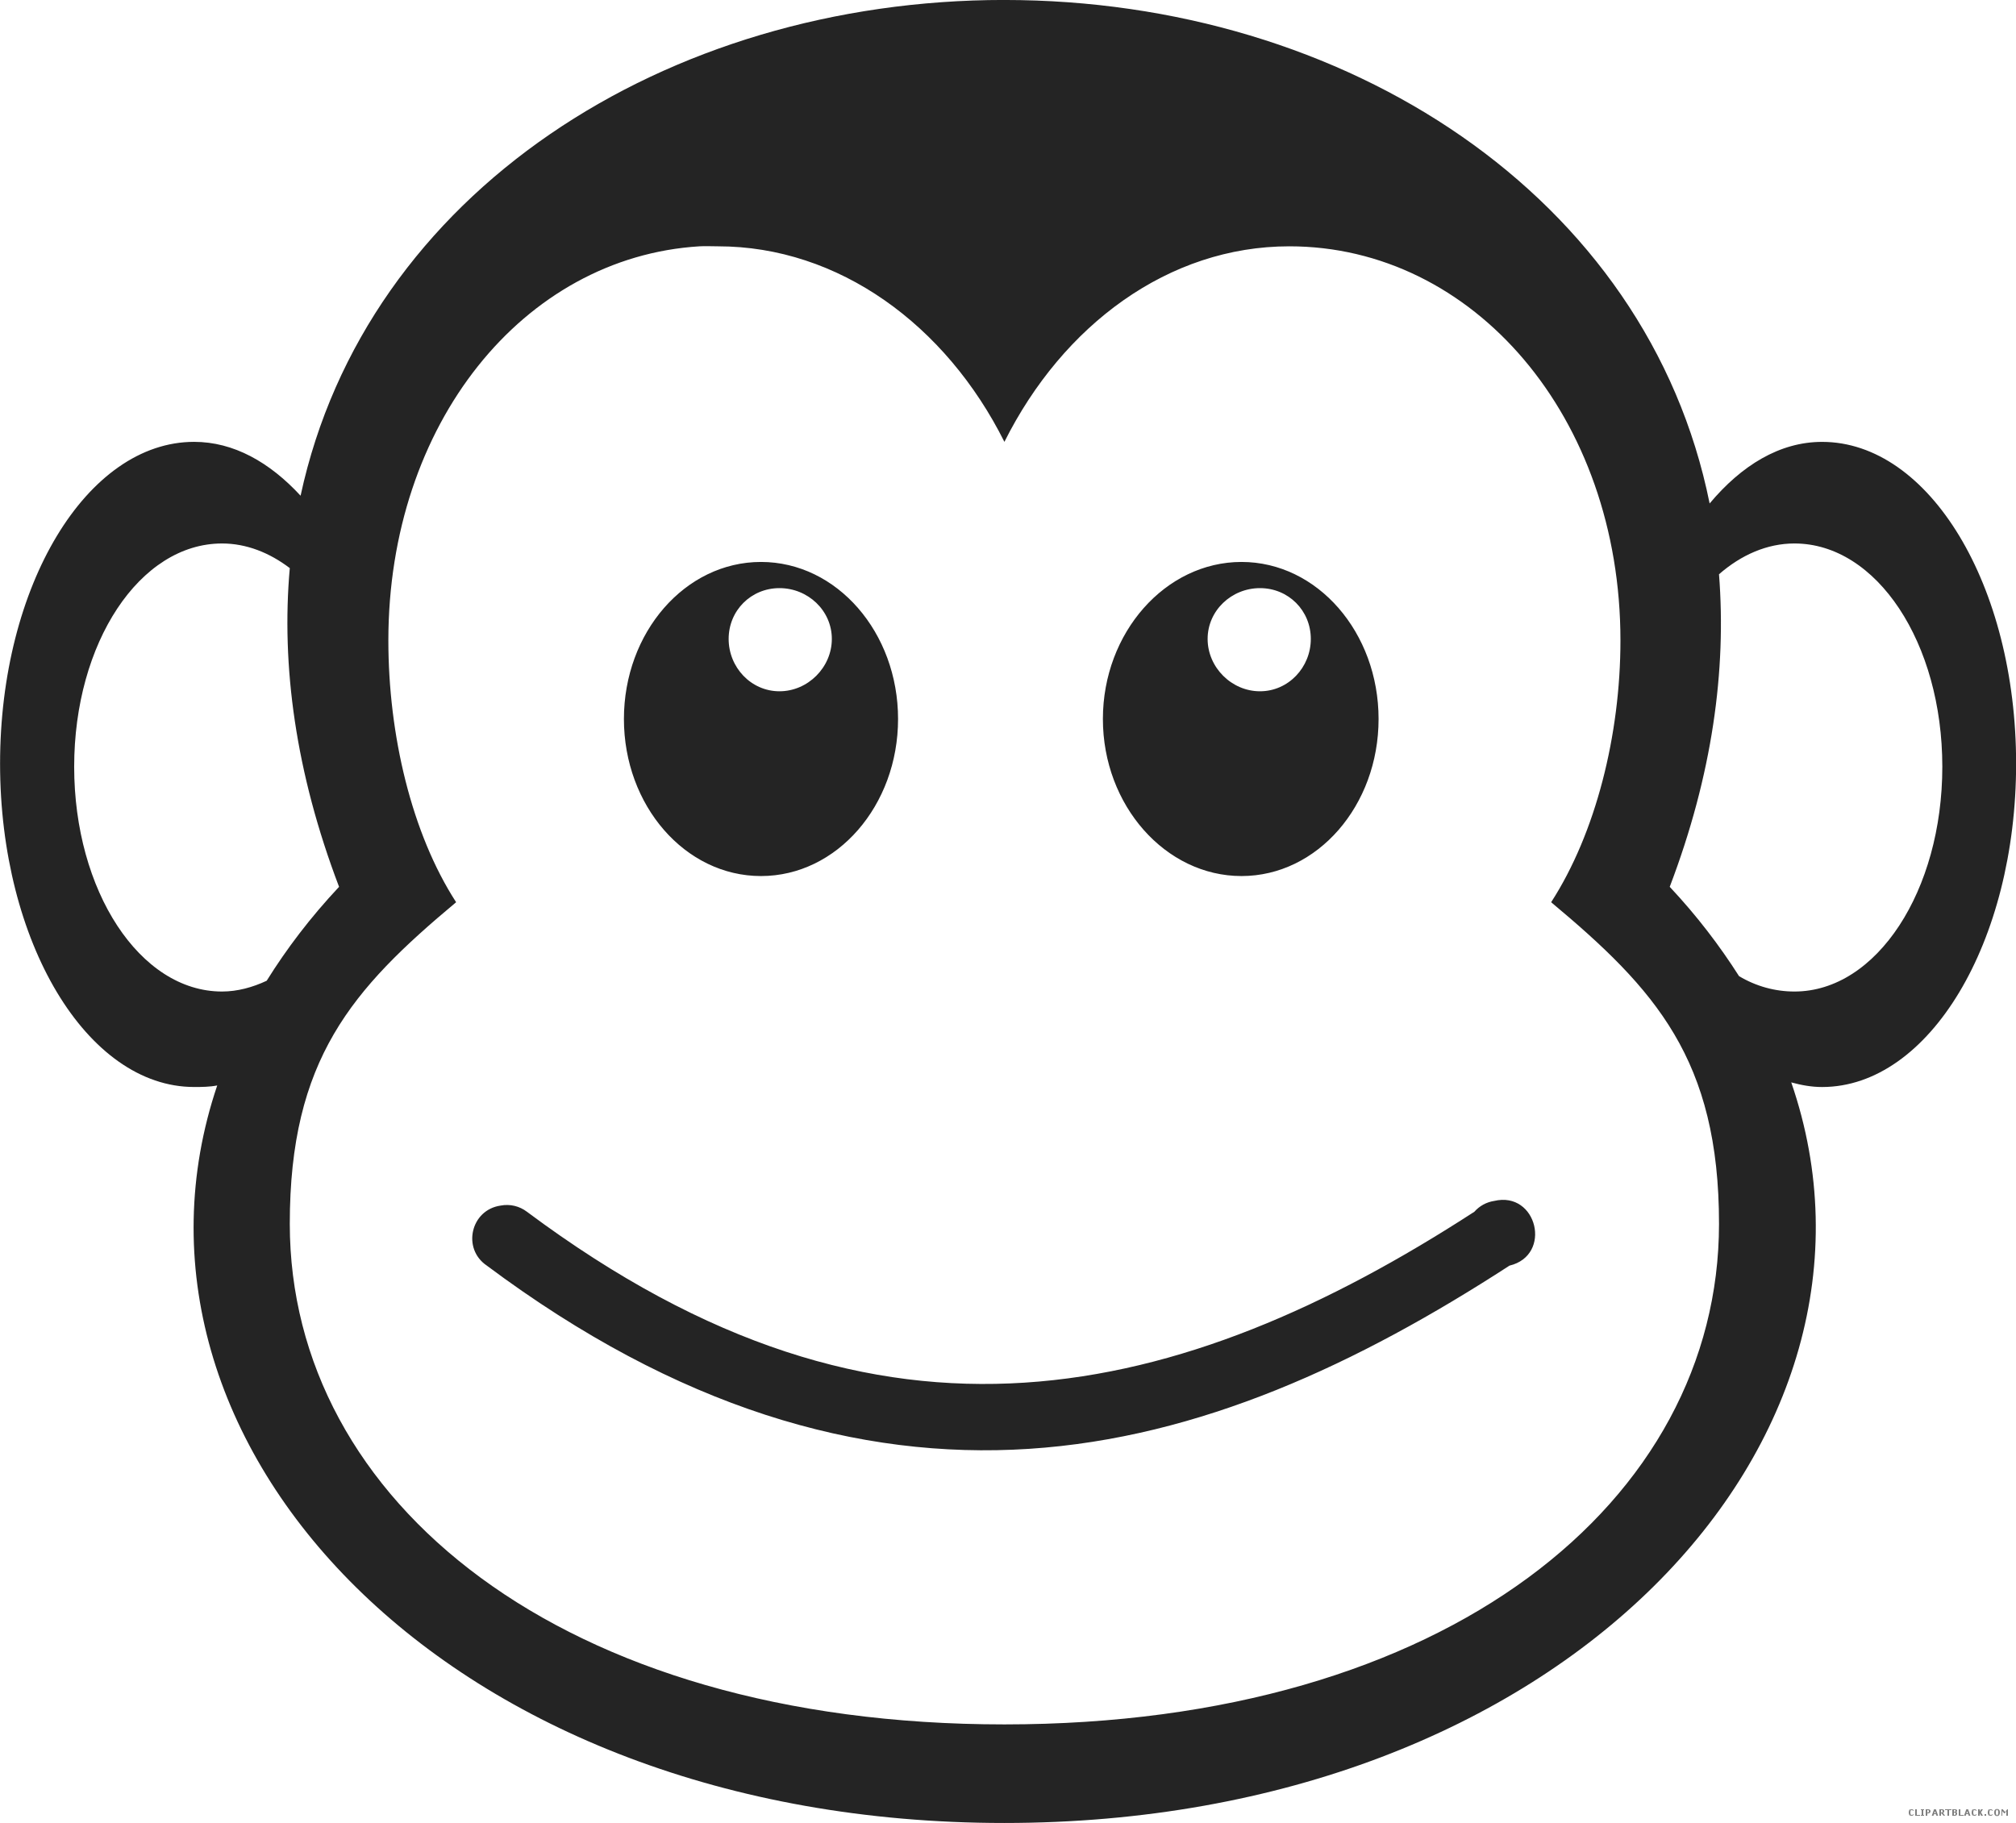 banner black and white download Monkey face clipart black and white. Clipartblack com animal free